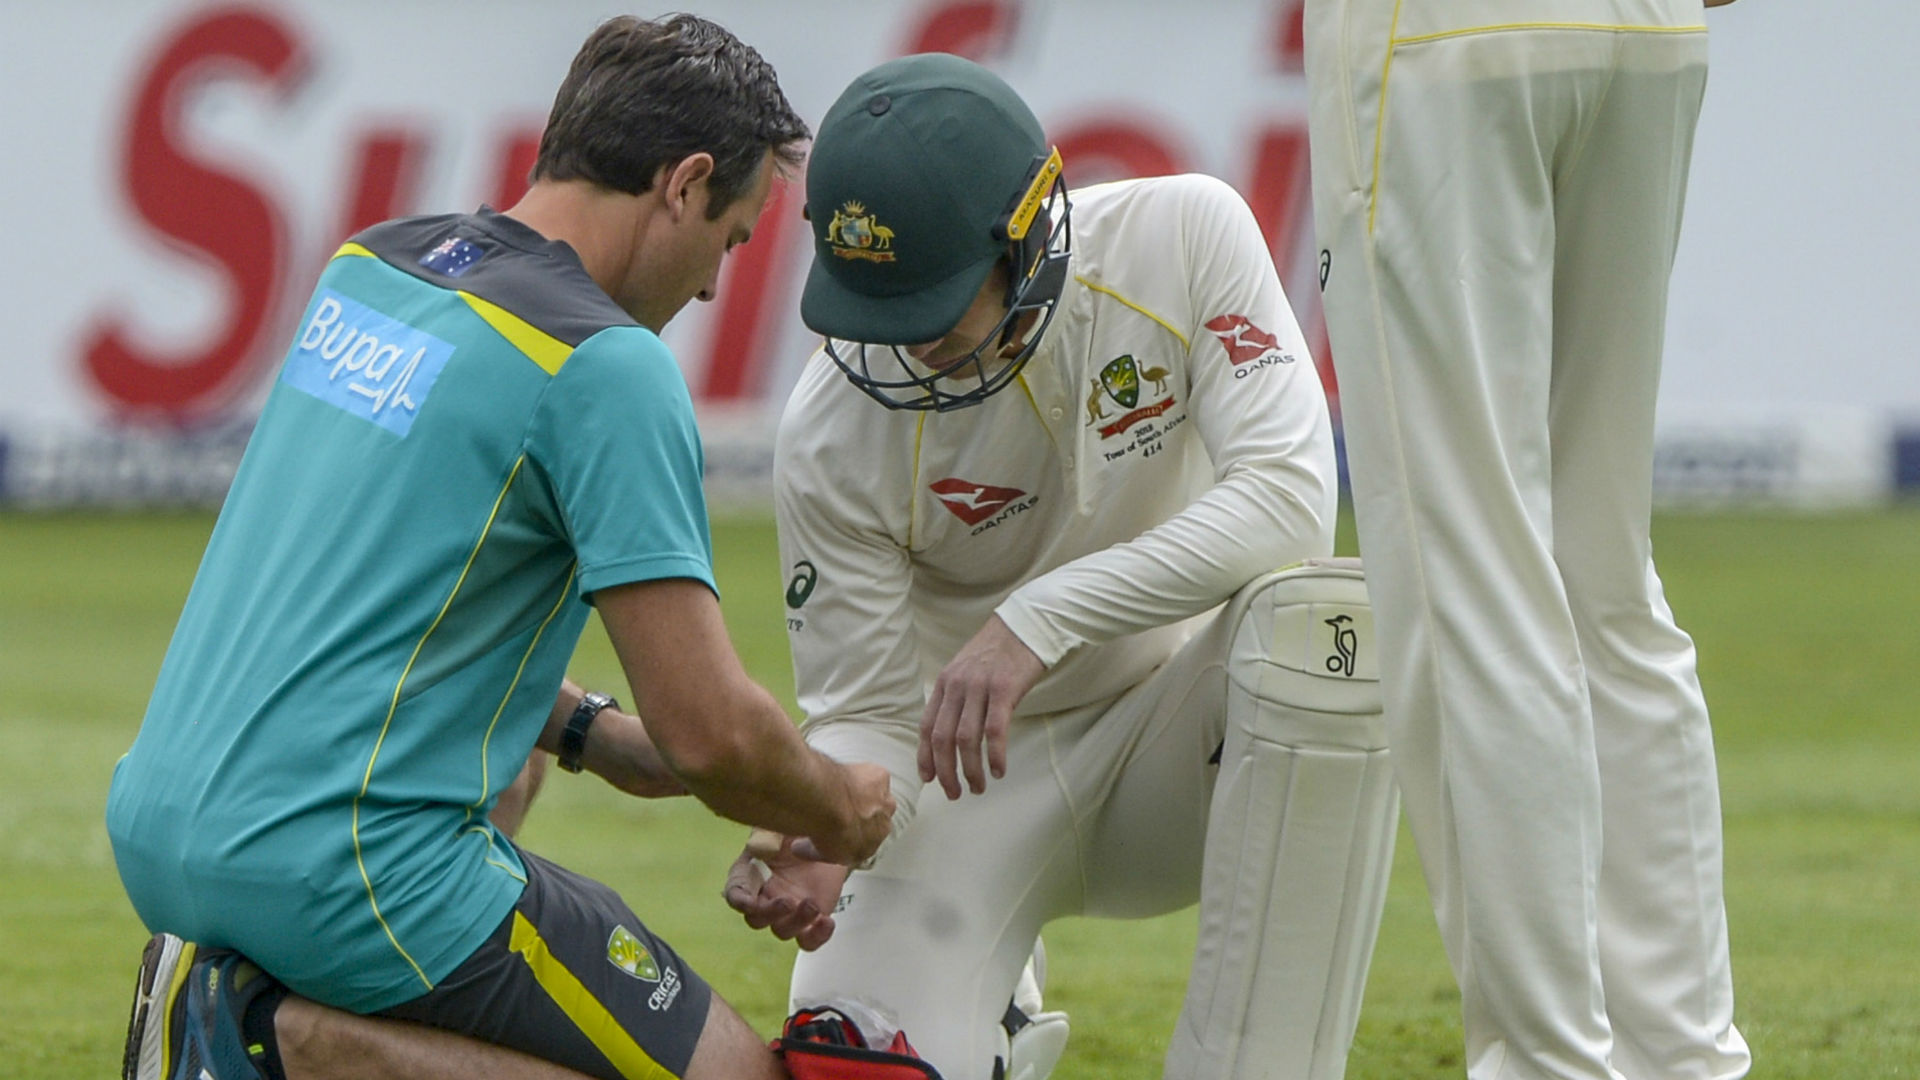 Australia have confirmed Tim Paine suffered a hairline fracture during day two of the series finale against South Africa.